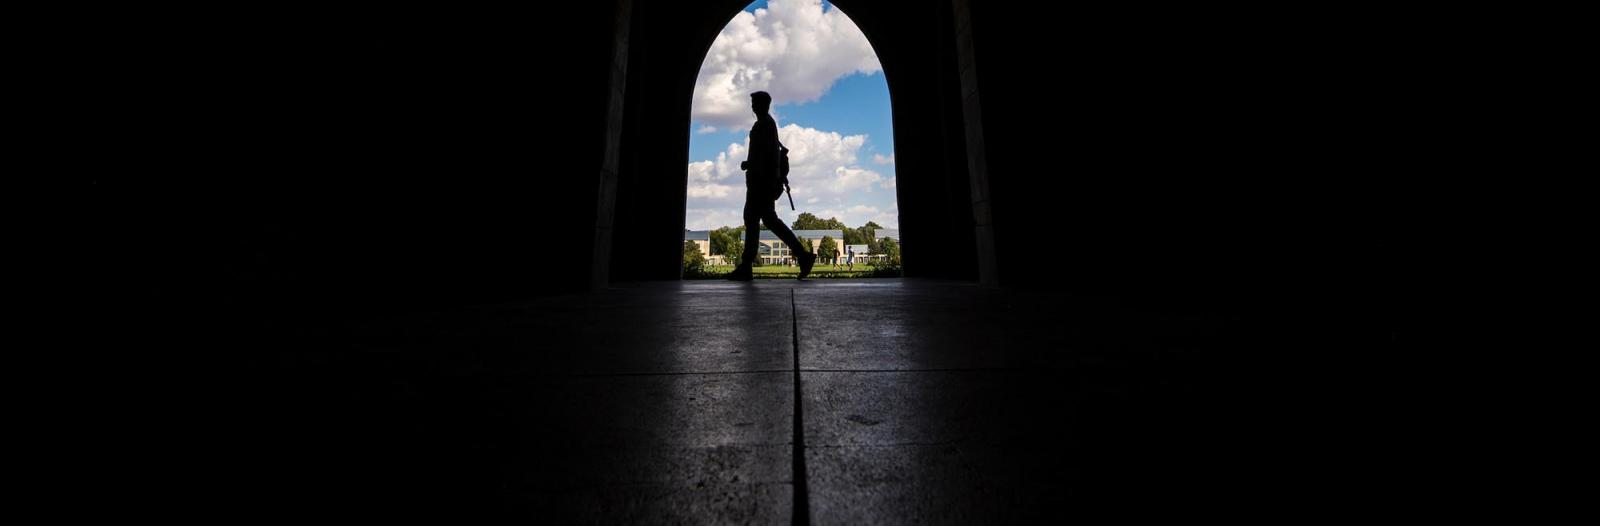 Silhouette of student walking in loggia archway